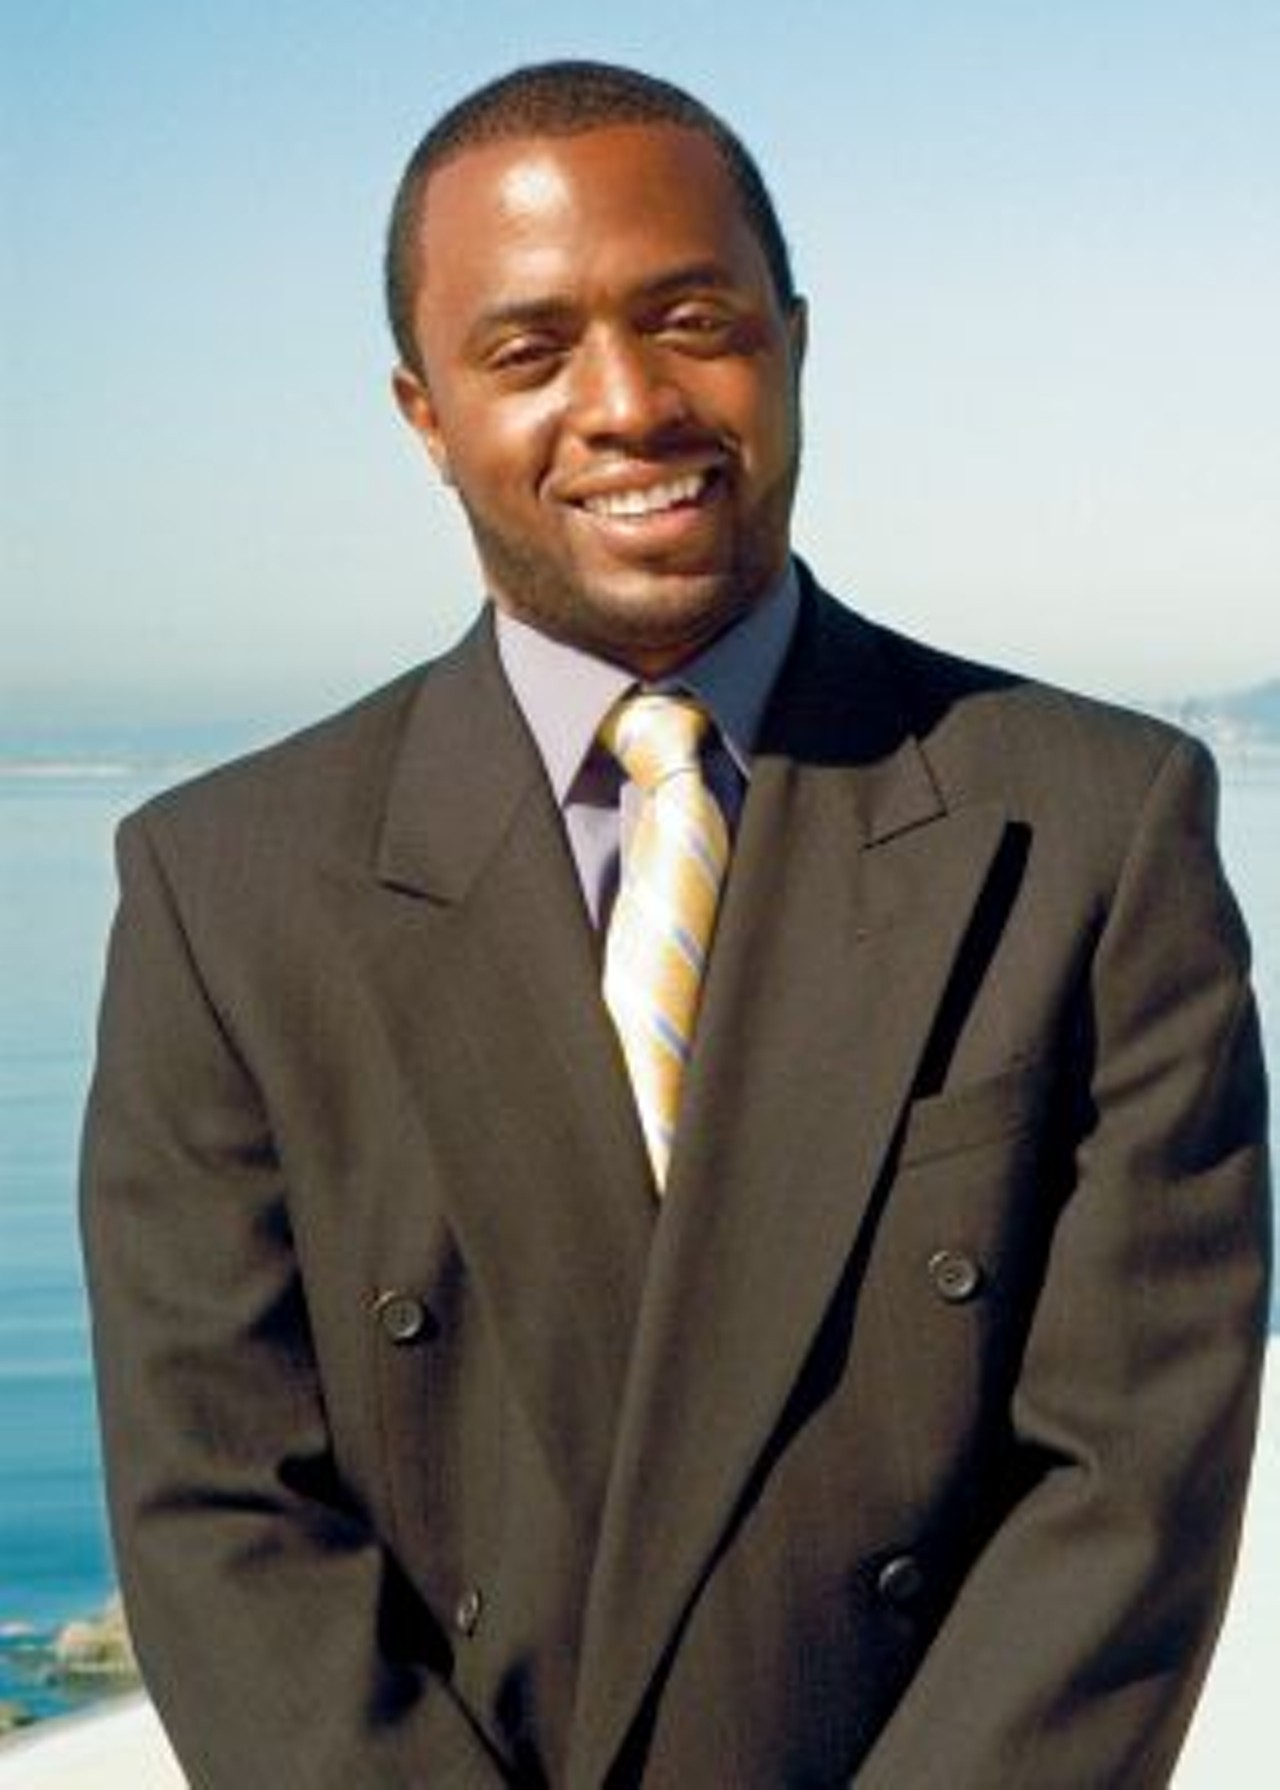 Identical Dems in Assembly Race | Election 2014 | East Bay